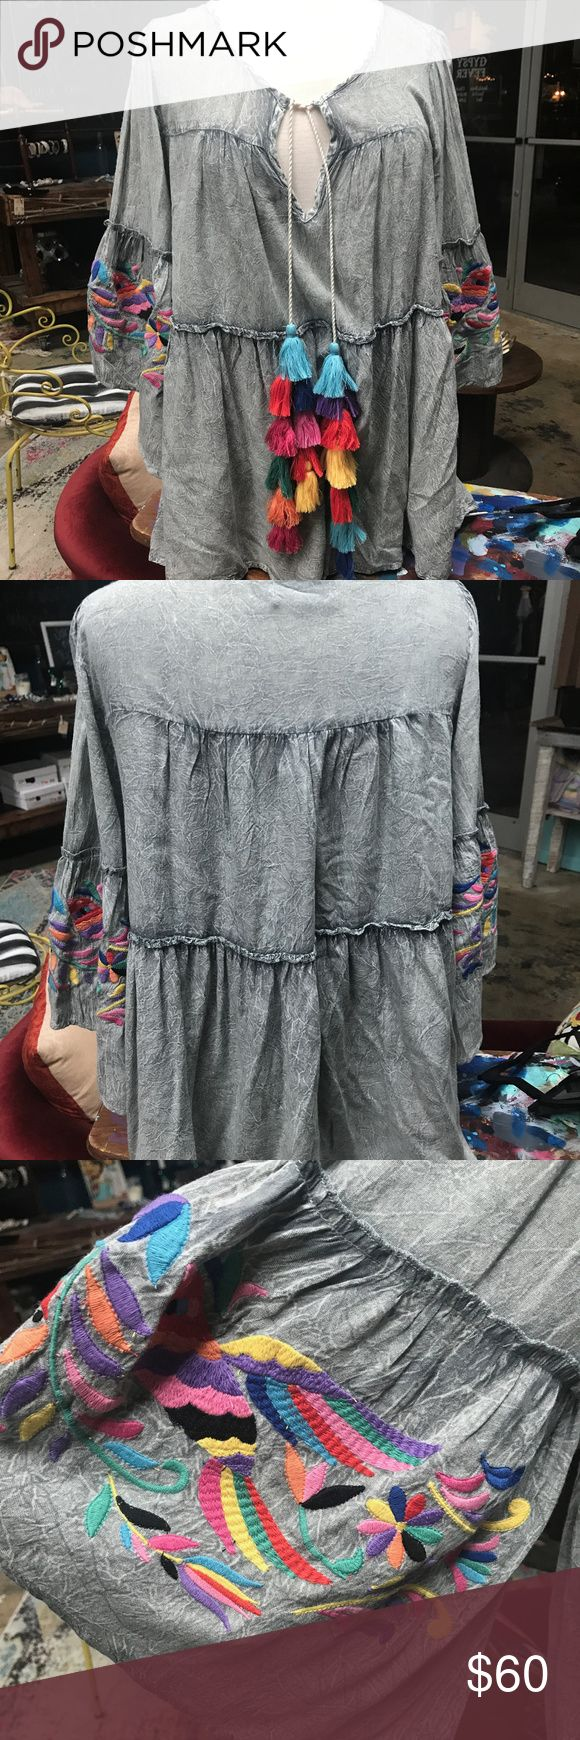 Judith March Boho Grey acid wash top L Beautifully detailed Judith March Acid Wash top with tassels and embroidered bell sleeves Judith March Tops Blouses